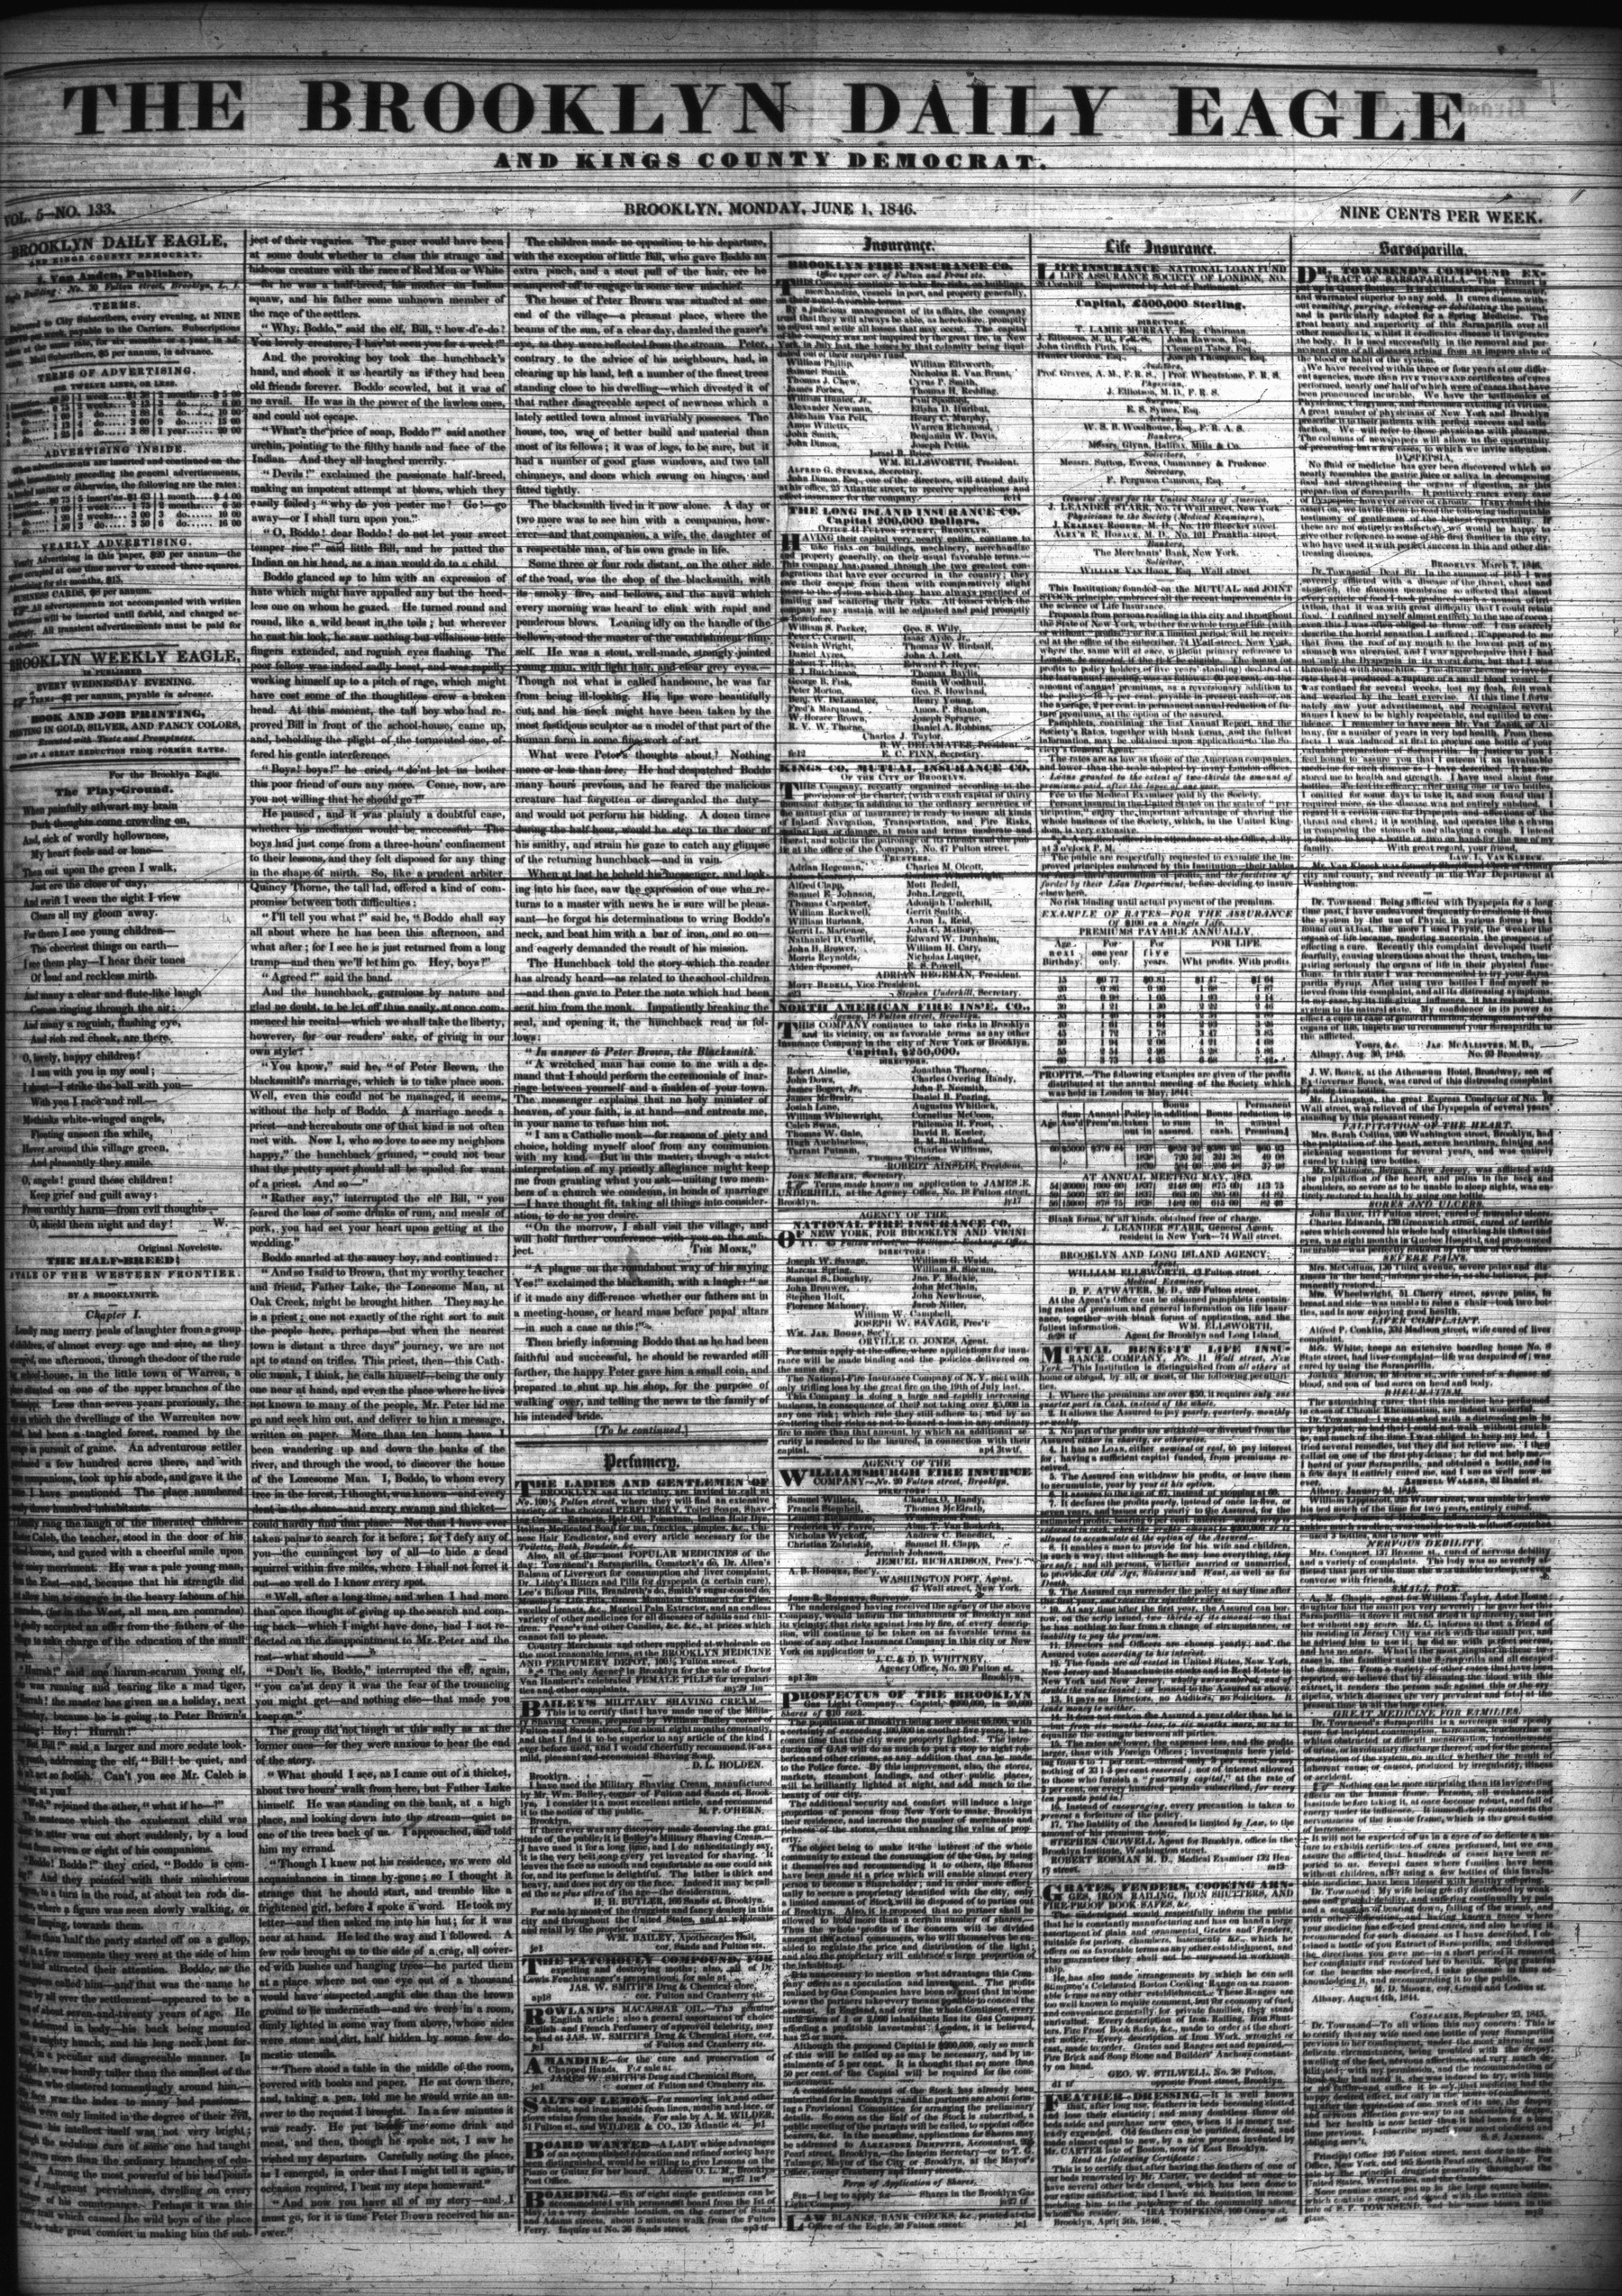 Structure: Brooklyn Daily Eagle, June 1846